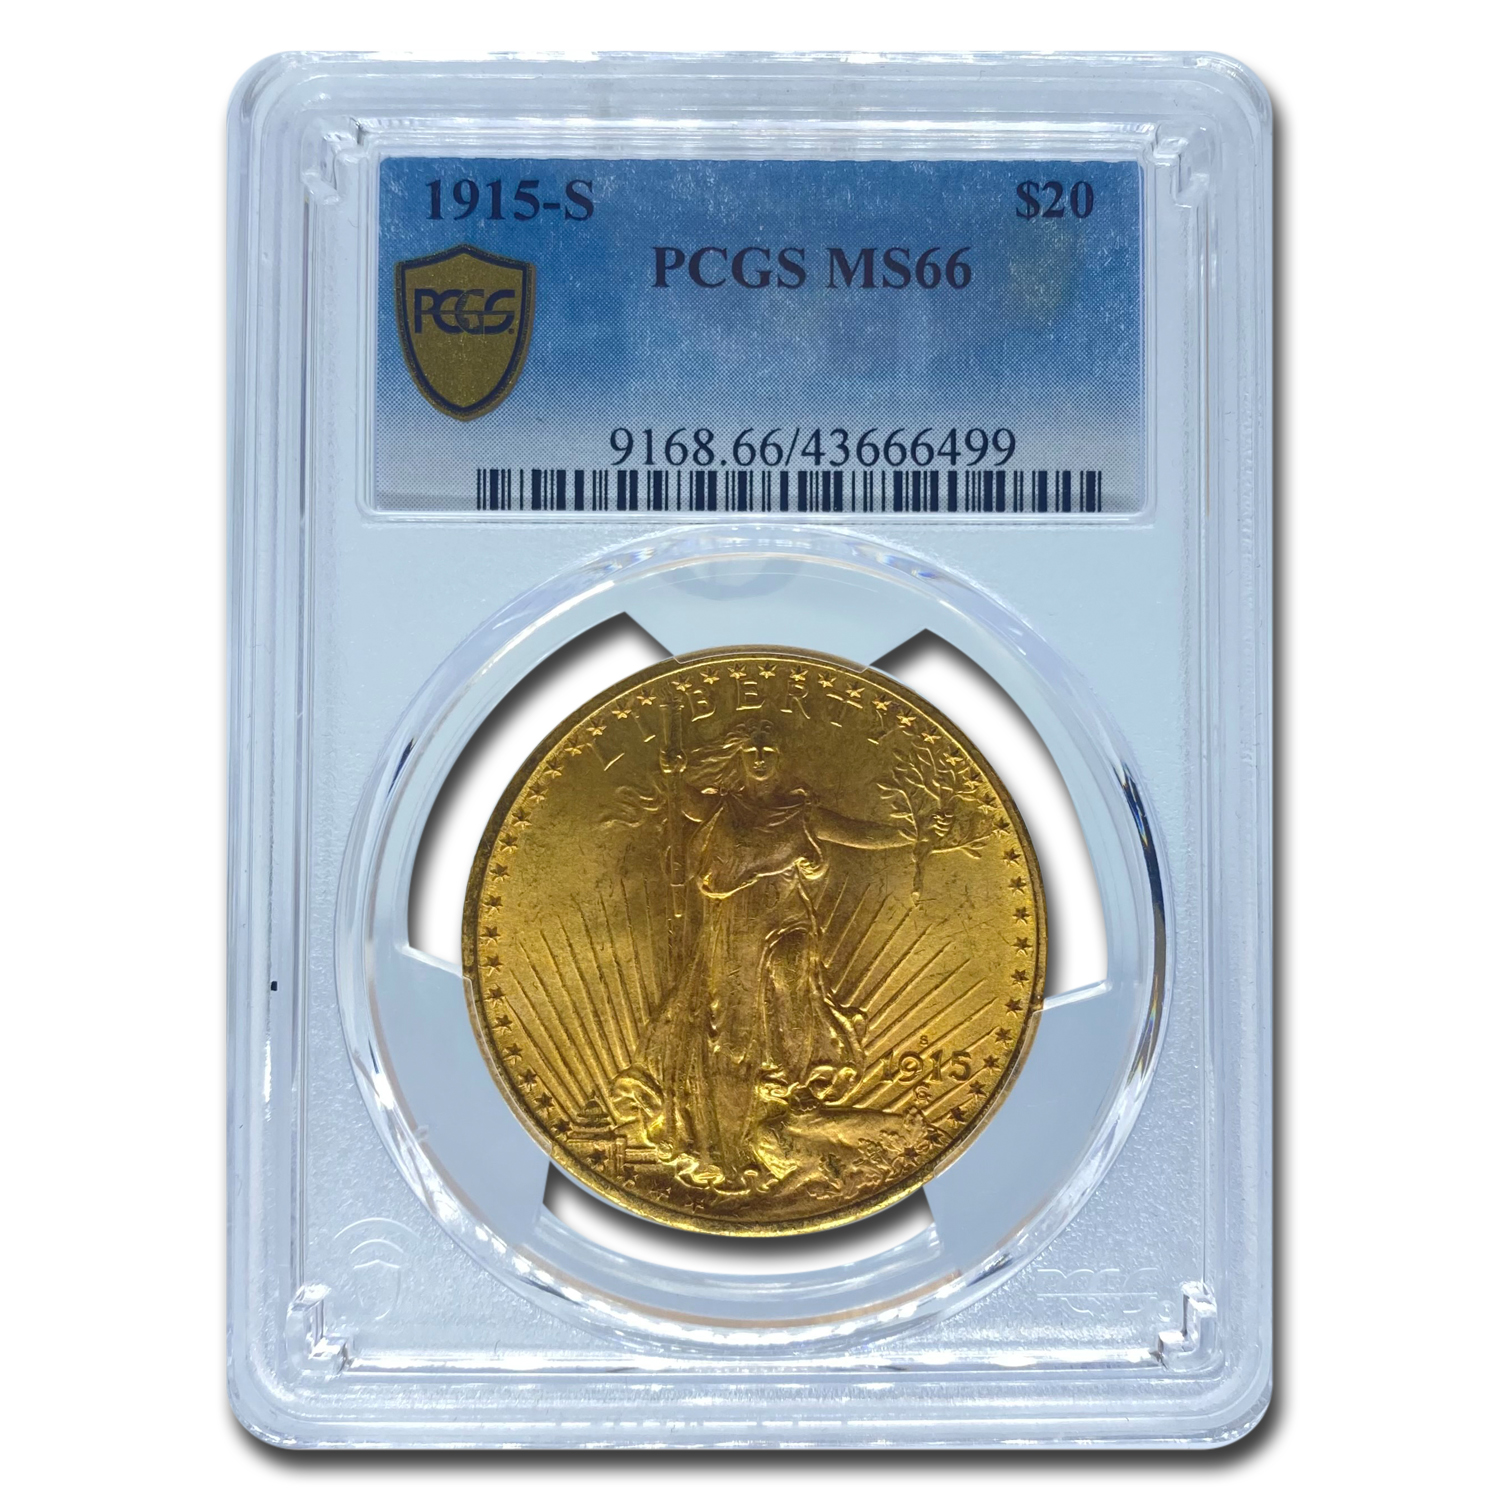 1915-S $20 St. Gaudens Gold Double Eagle MS-66 PCGS